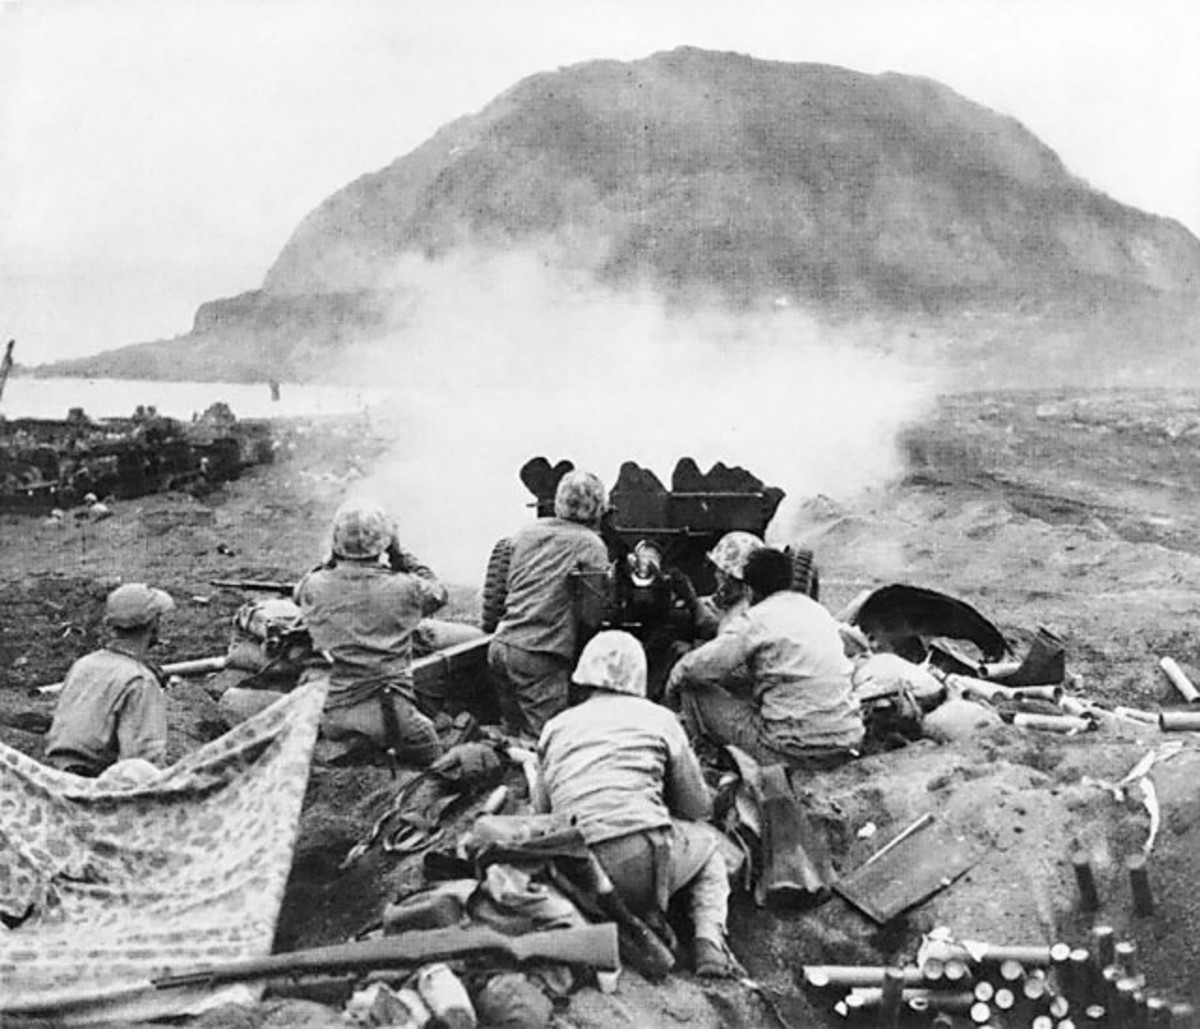 Marines returning fire towards Mount Suribachi.